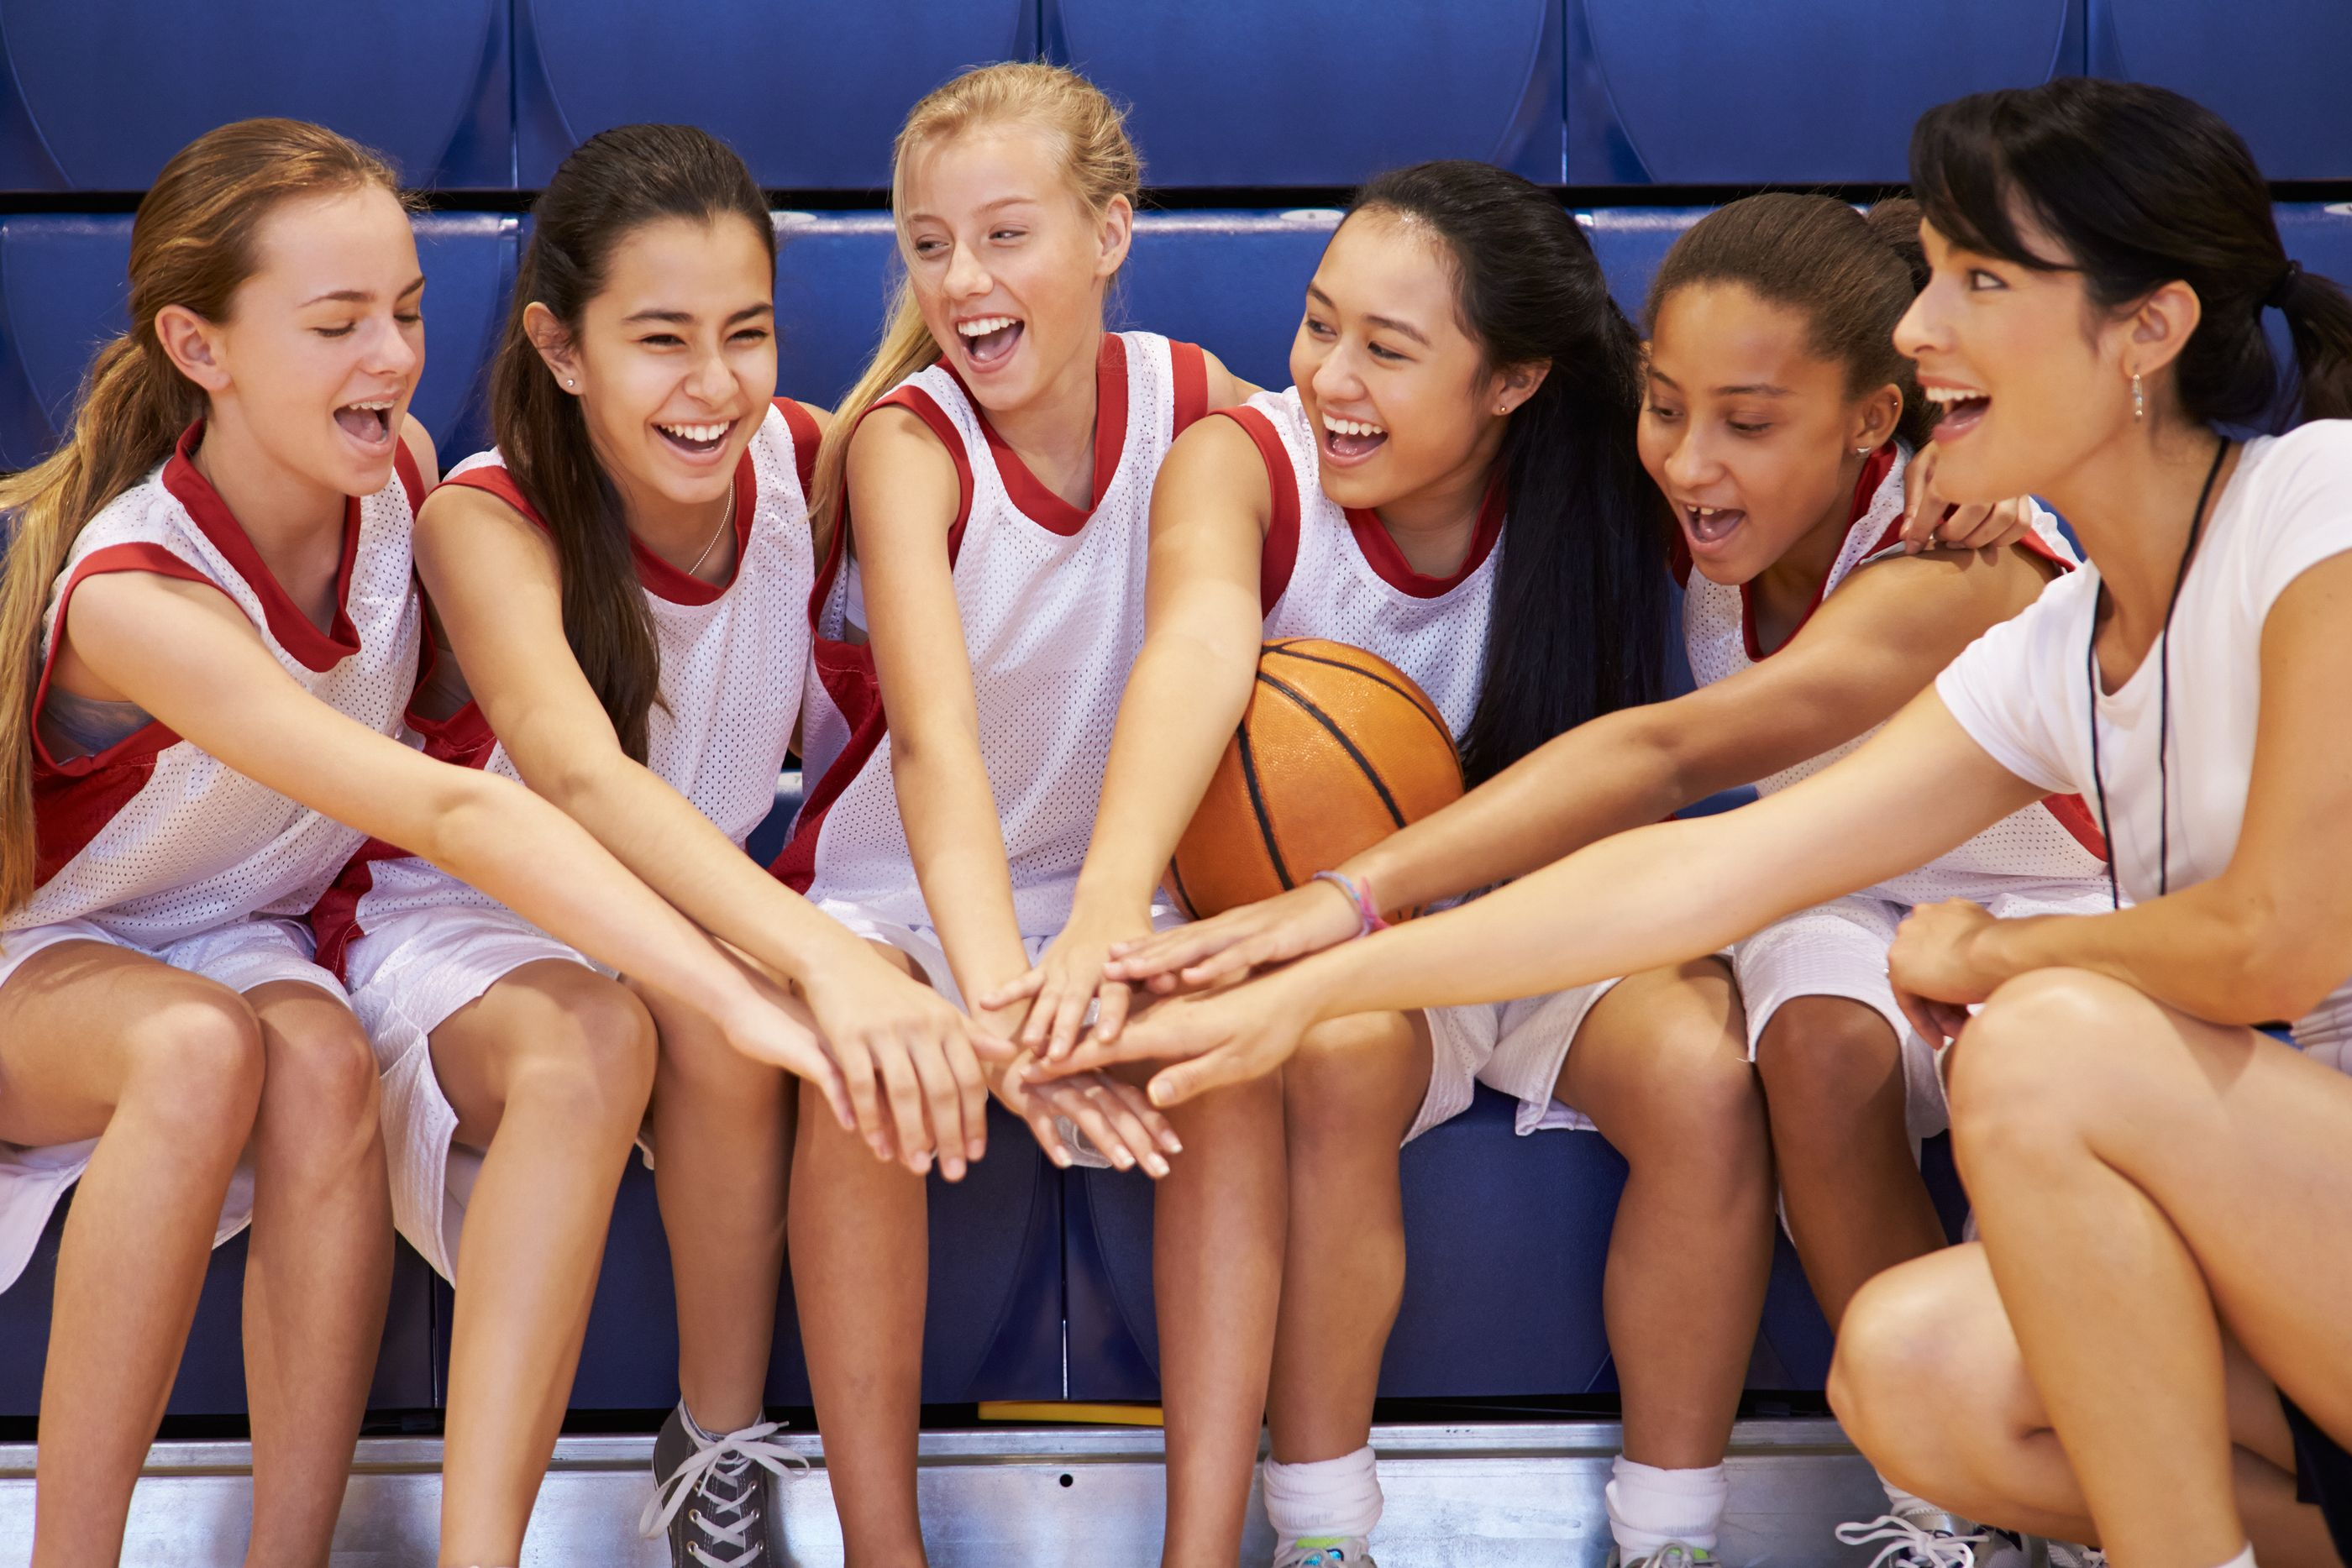 Team Building and Positive Team Culture for Student